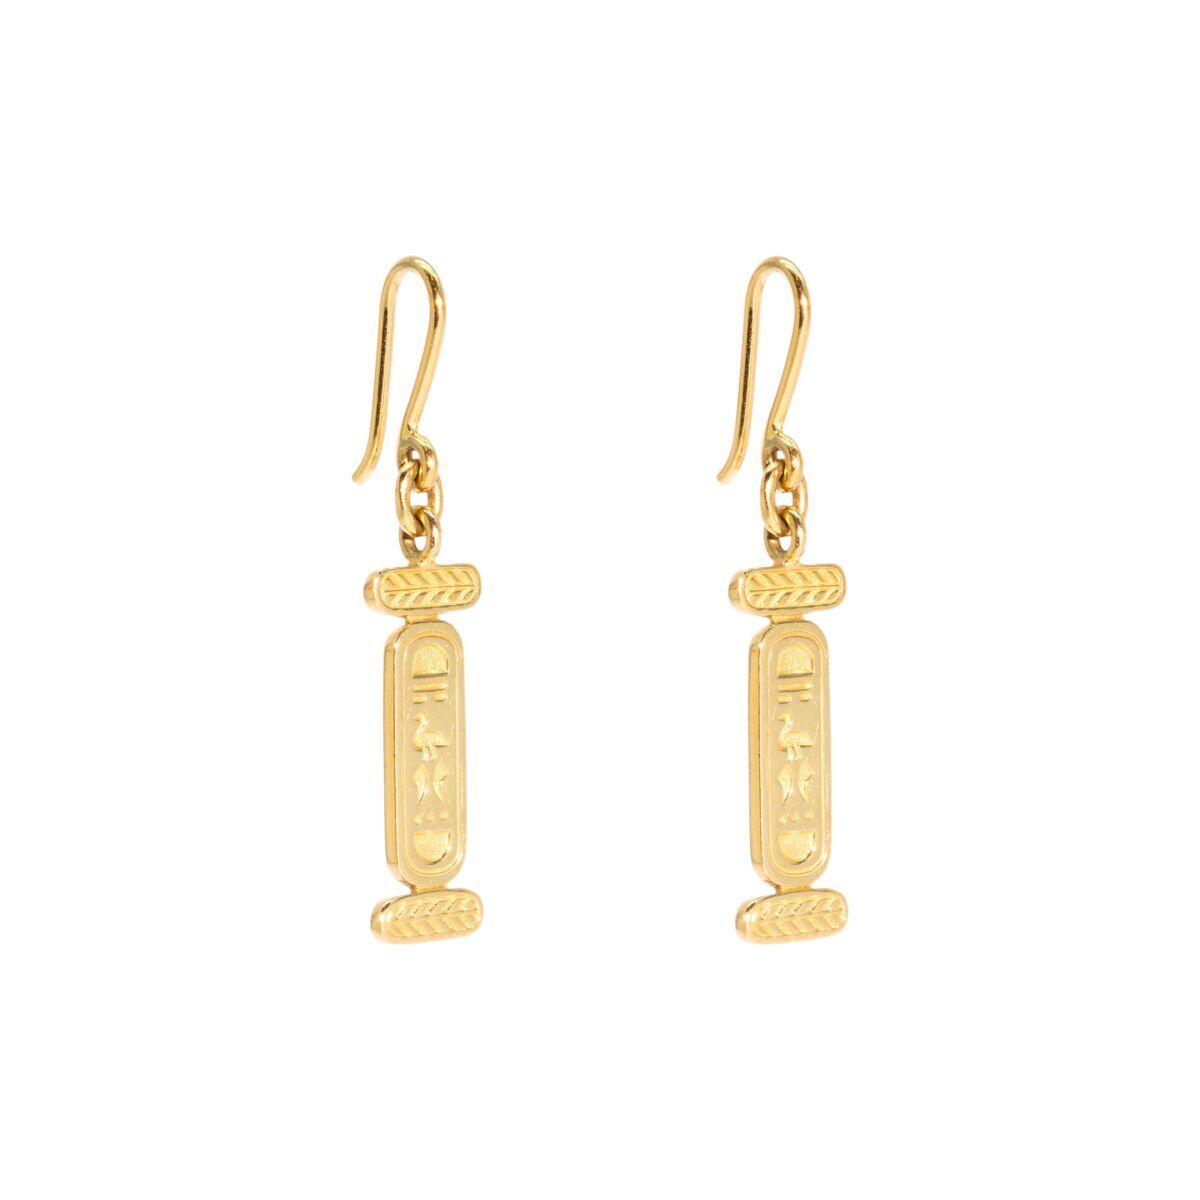 The Yael Vintage Hieroglyph Earrings